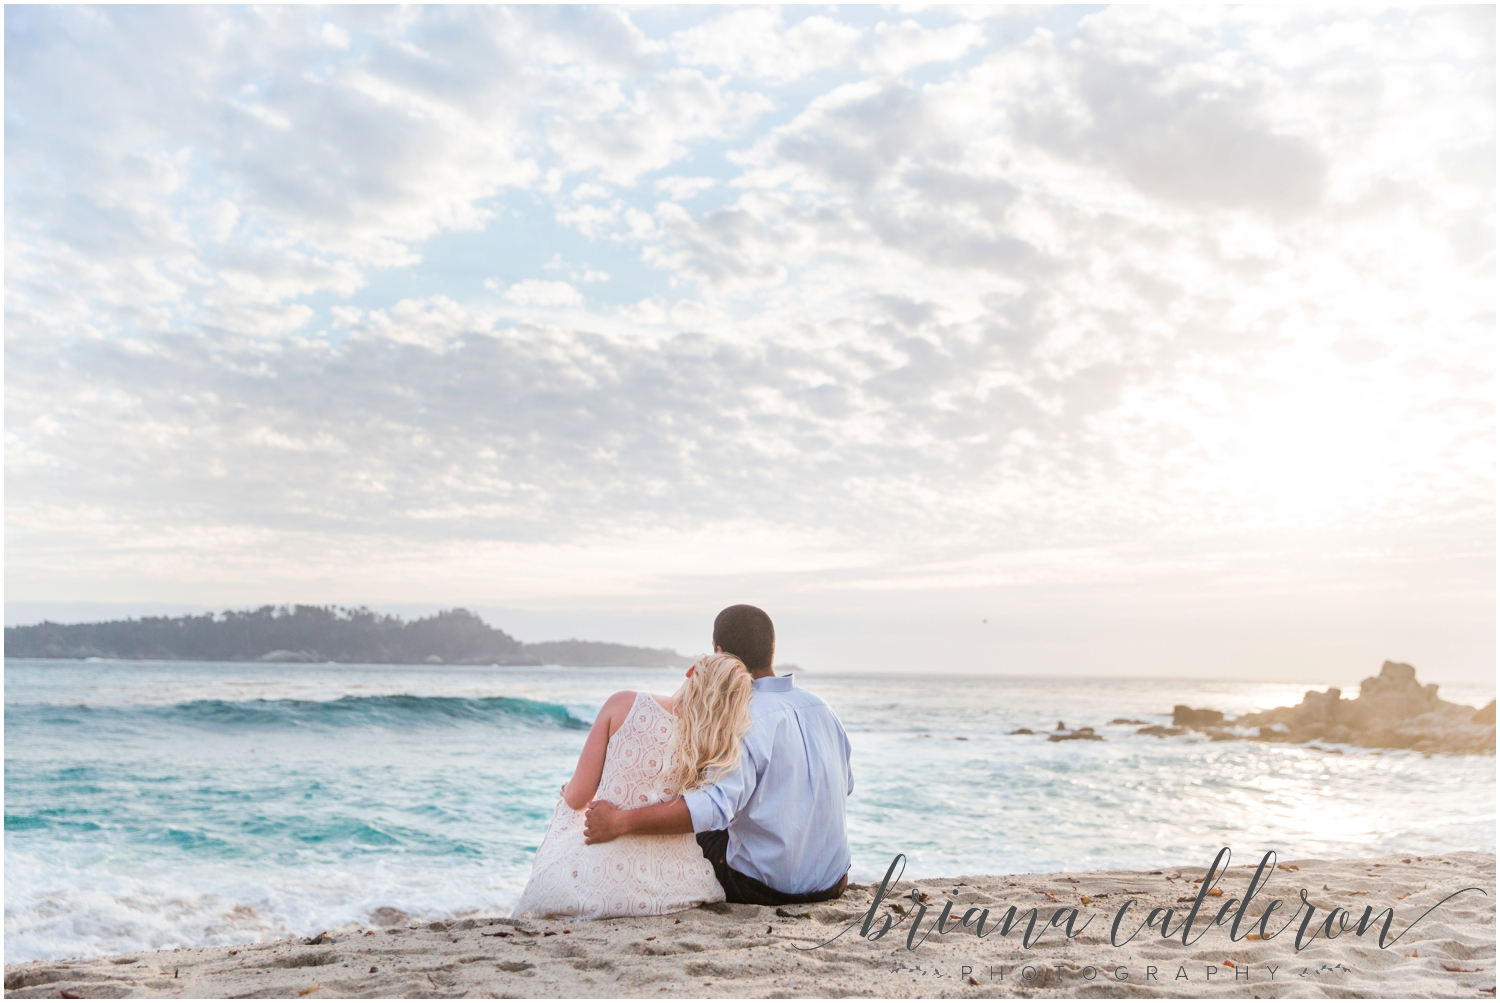 Carmel beach engagement pictures by Briana Calderon Photography_1165.jpg